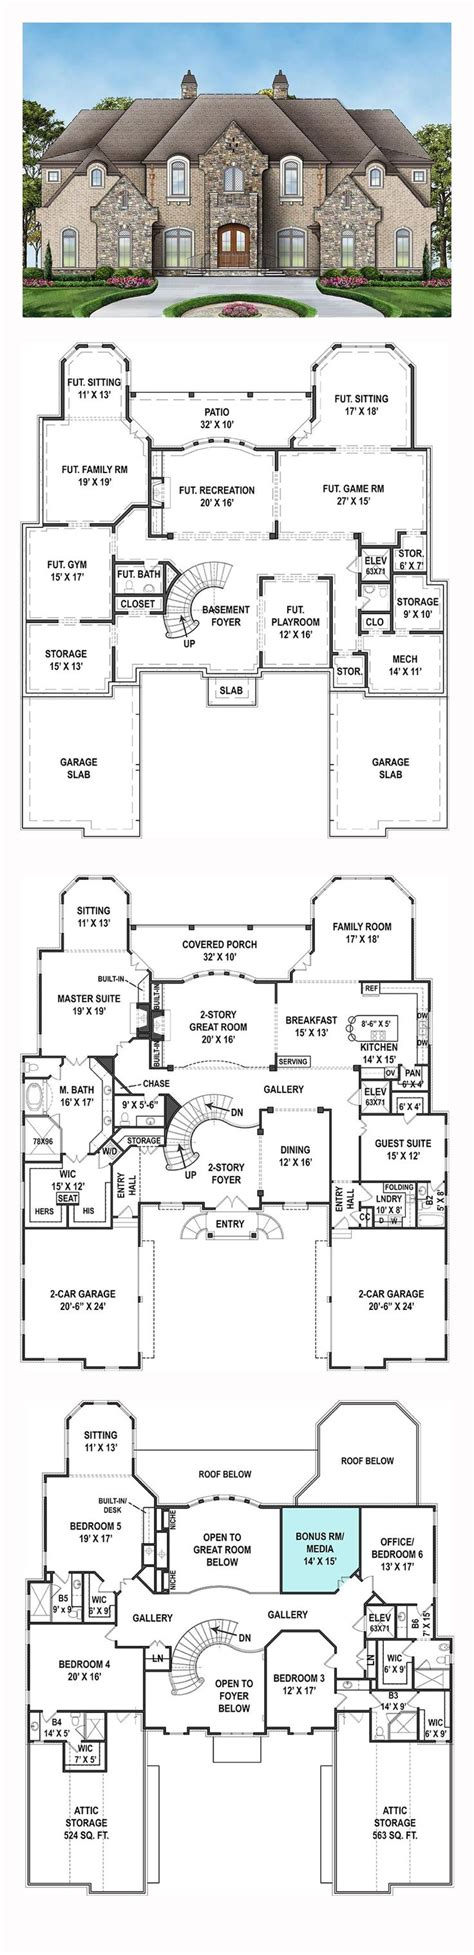 spelling mansion floor plan spelling manor floor plan sensational best mansion bedroom